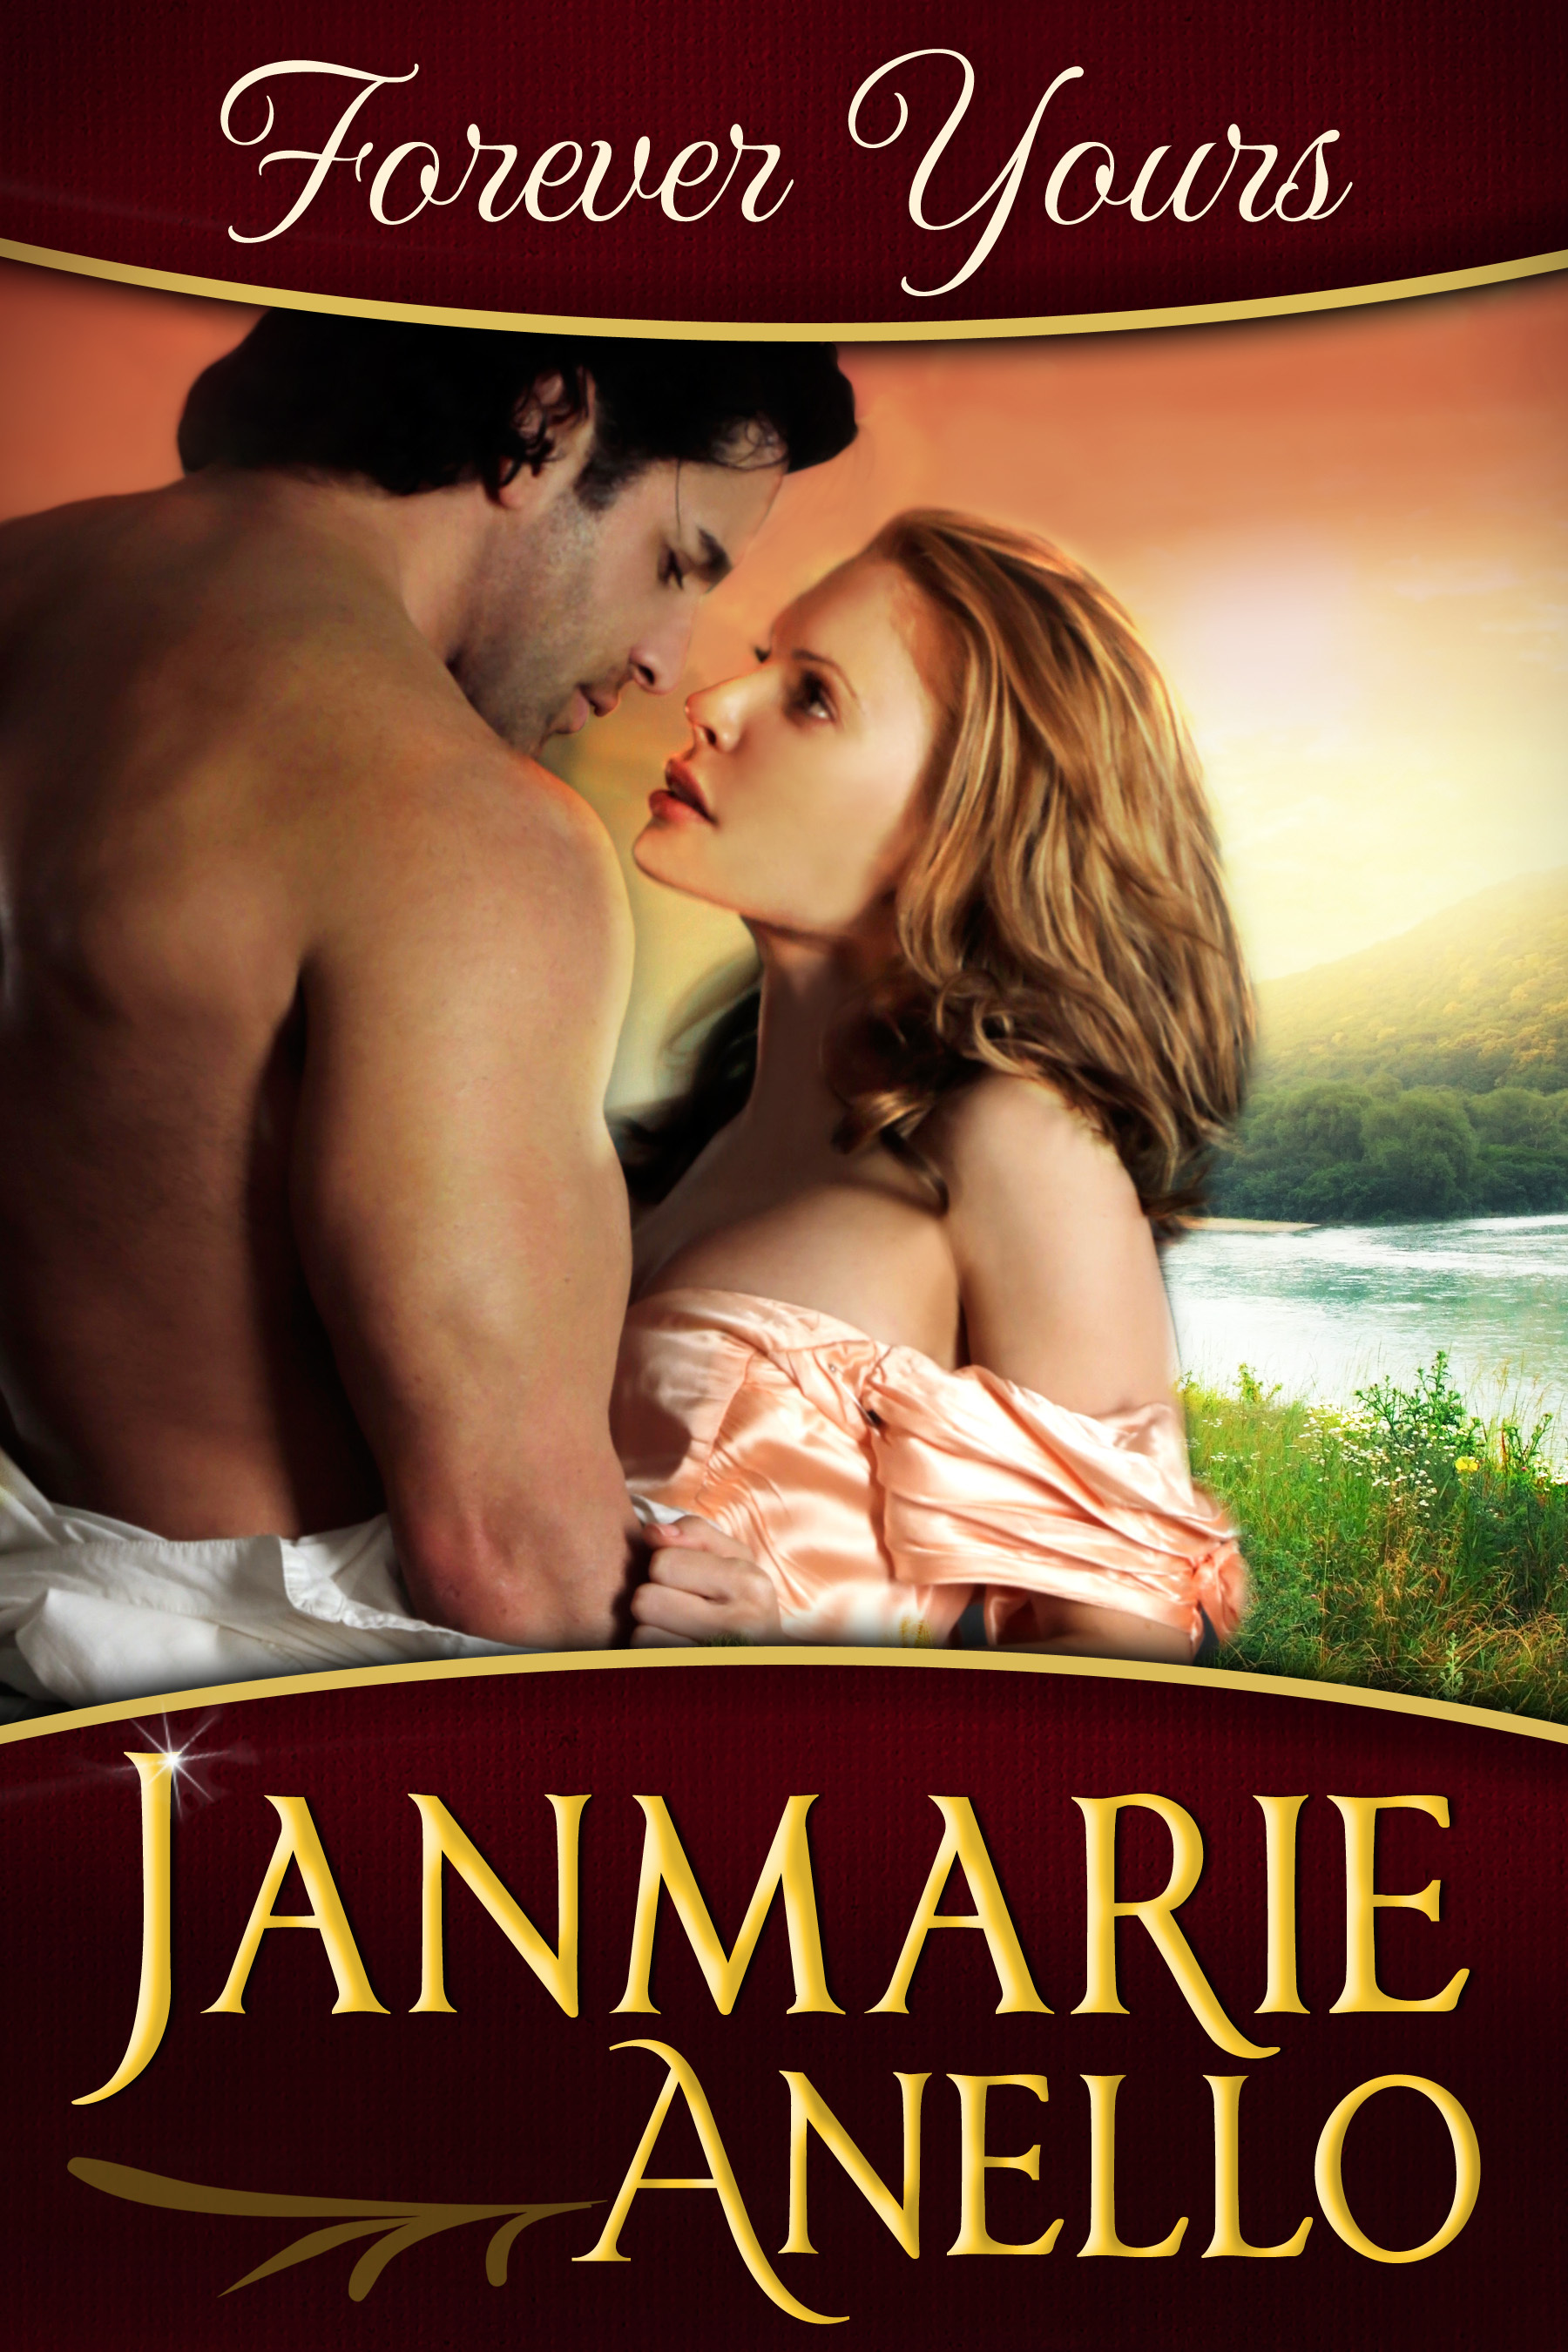 Forever Yours Janmarie Anello